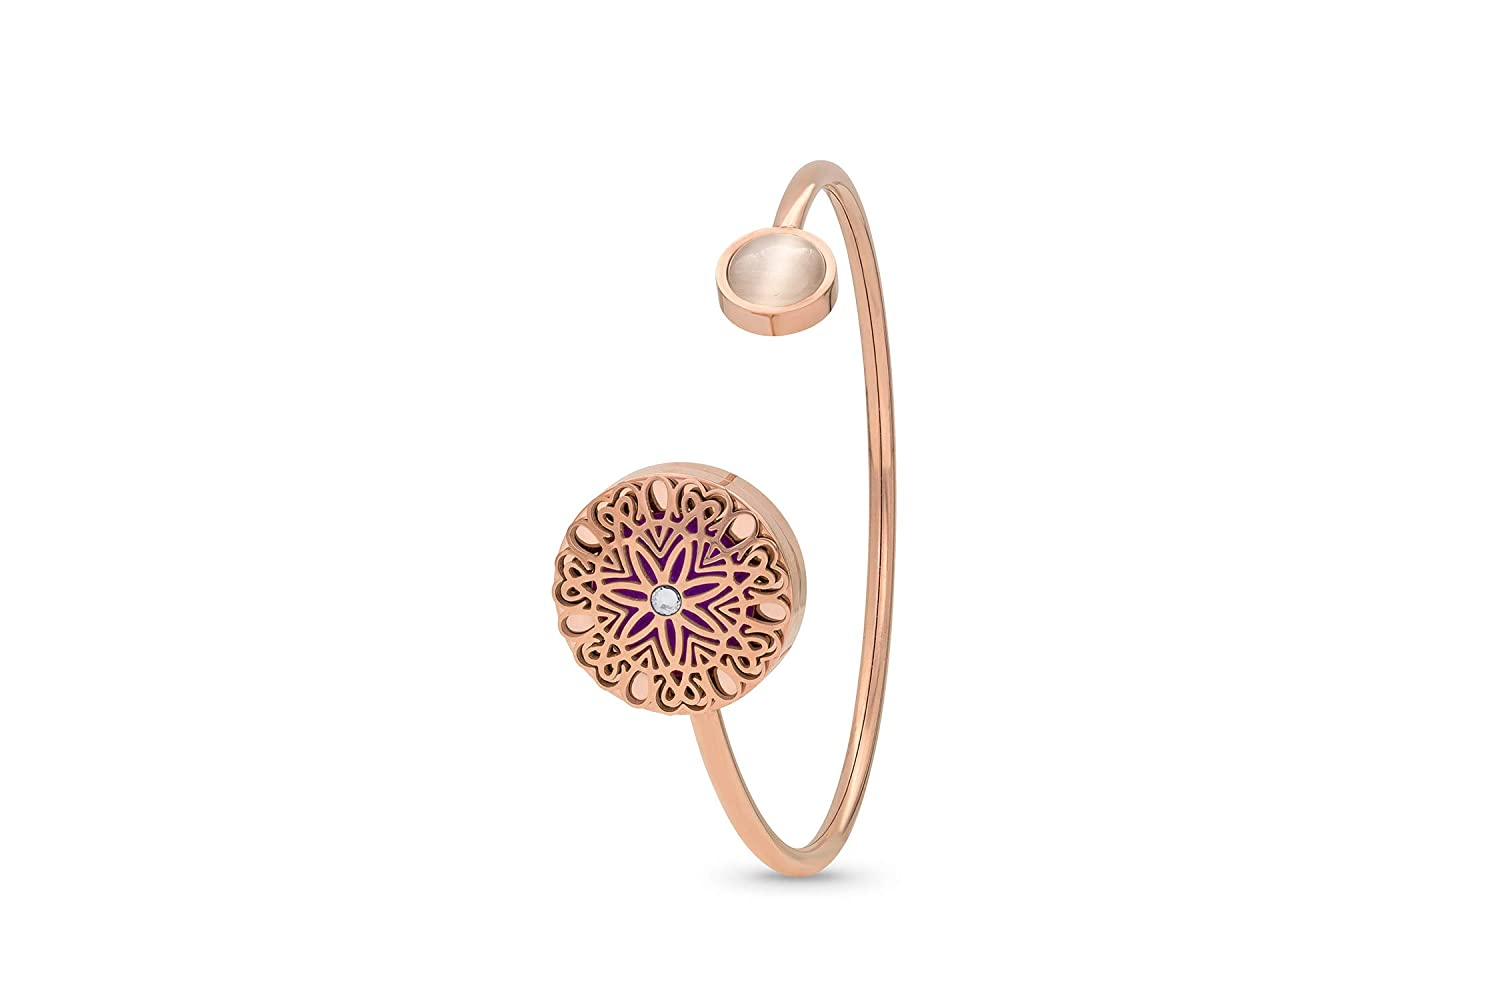 FlowerBurst and Cat Eye Diffuser Bracelet, 9 Diffuser Pads, 20mm Locket Size, Twisting Cuff Allows Easy (Rose Gold and Cat Eye)